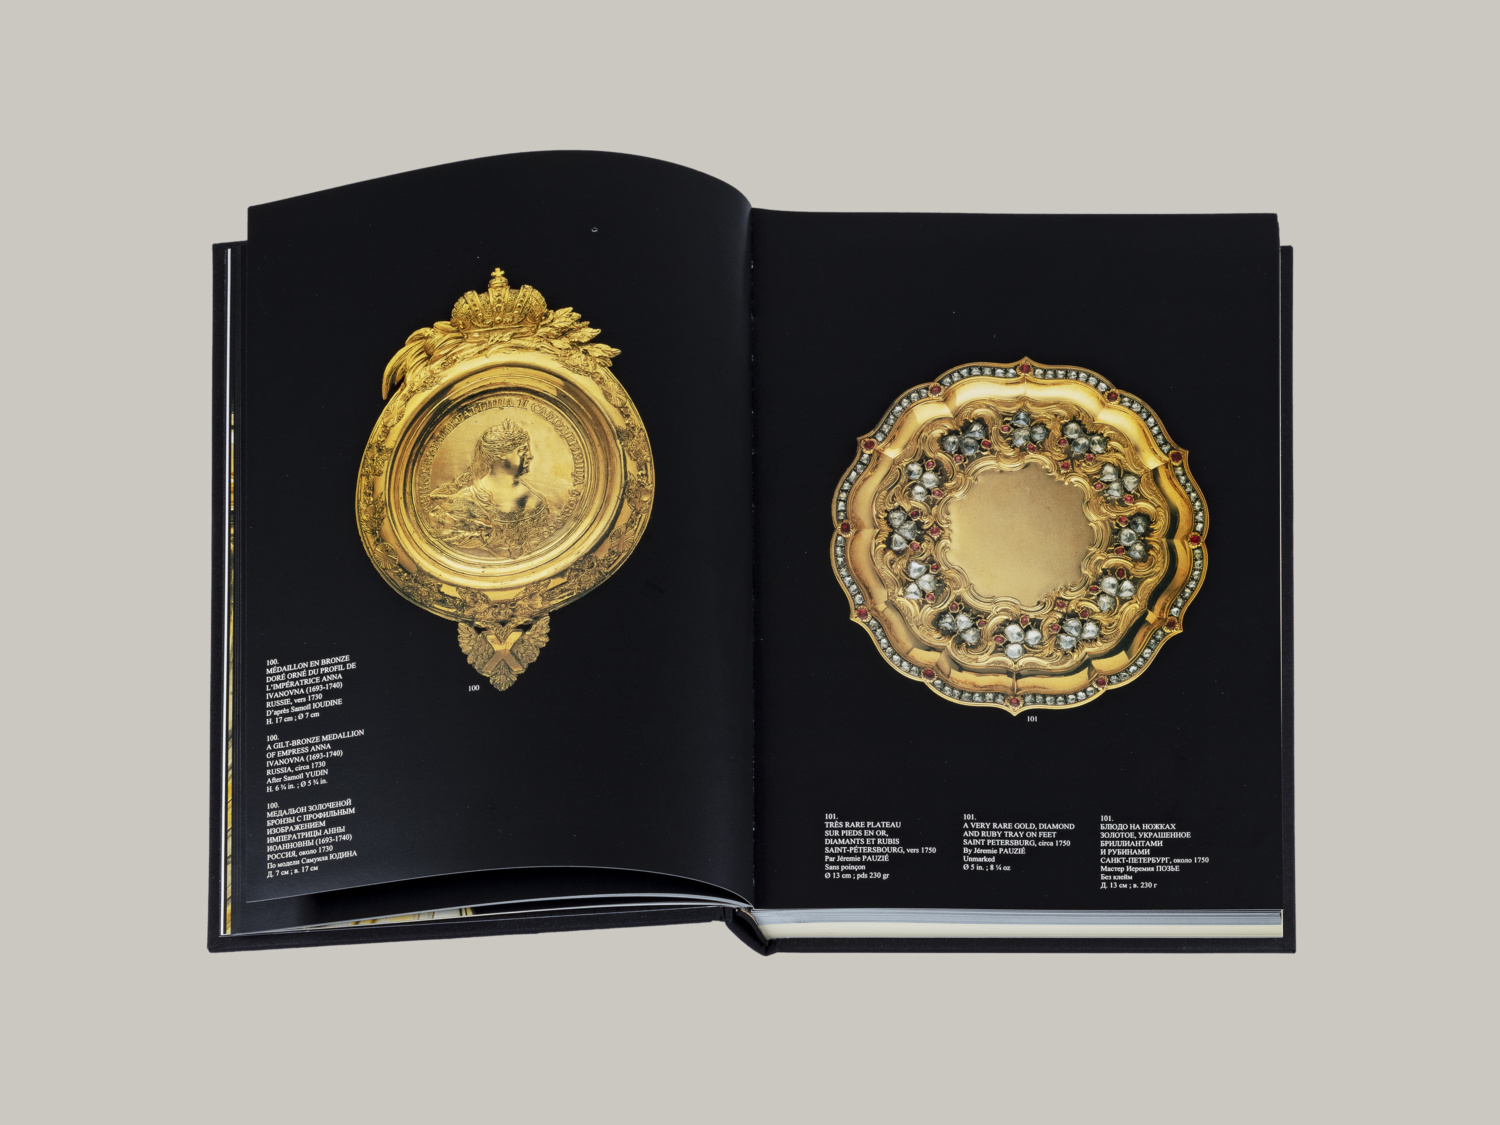 Treasures of the Czars, Russia & Europe from Peter the Great to Nicholas I - Galerie Kugel